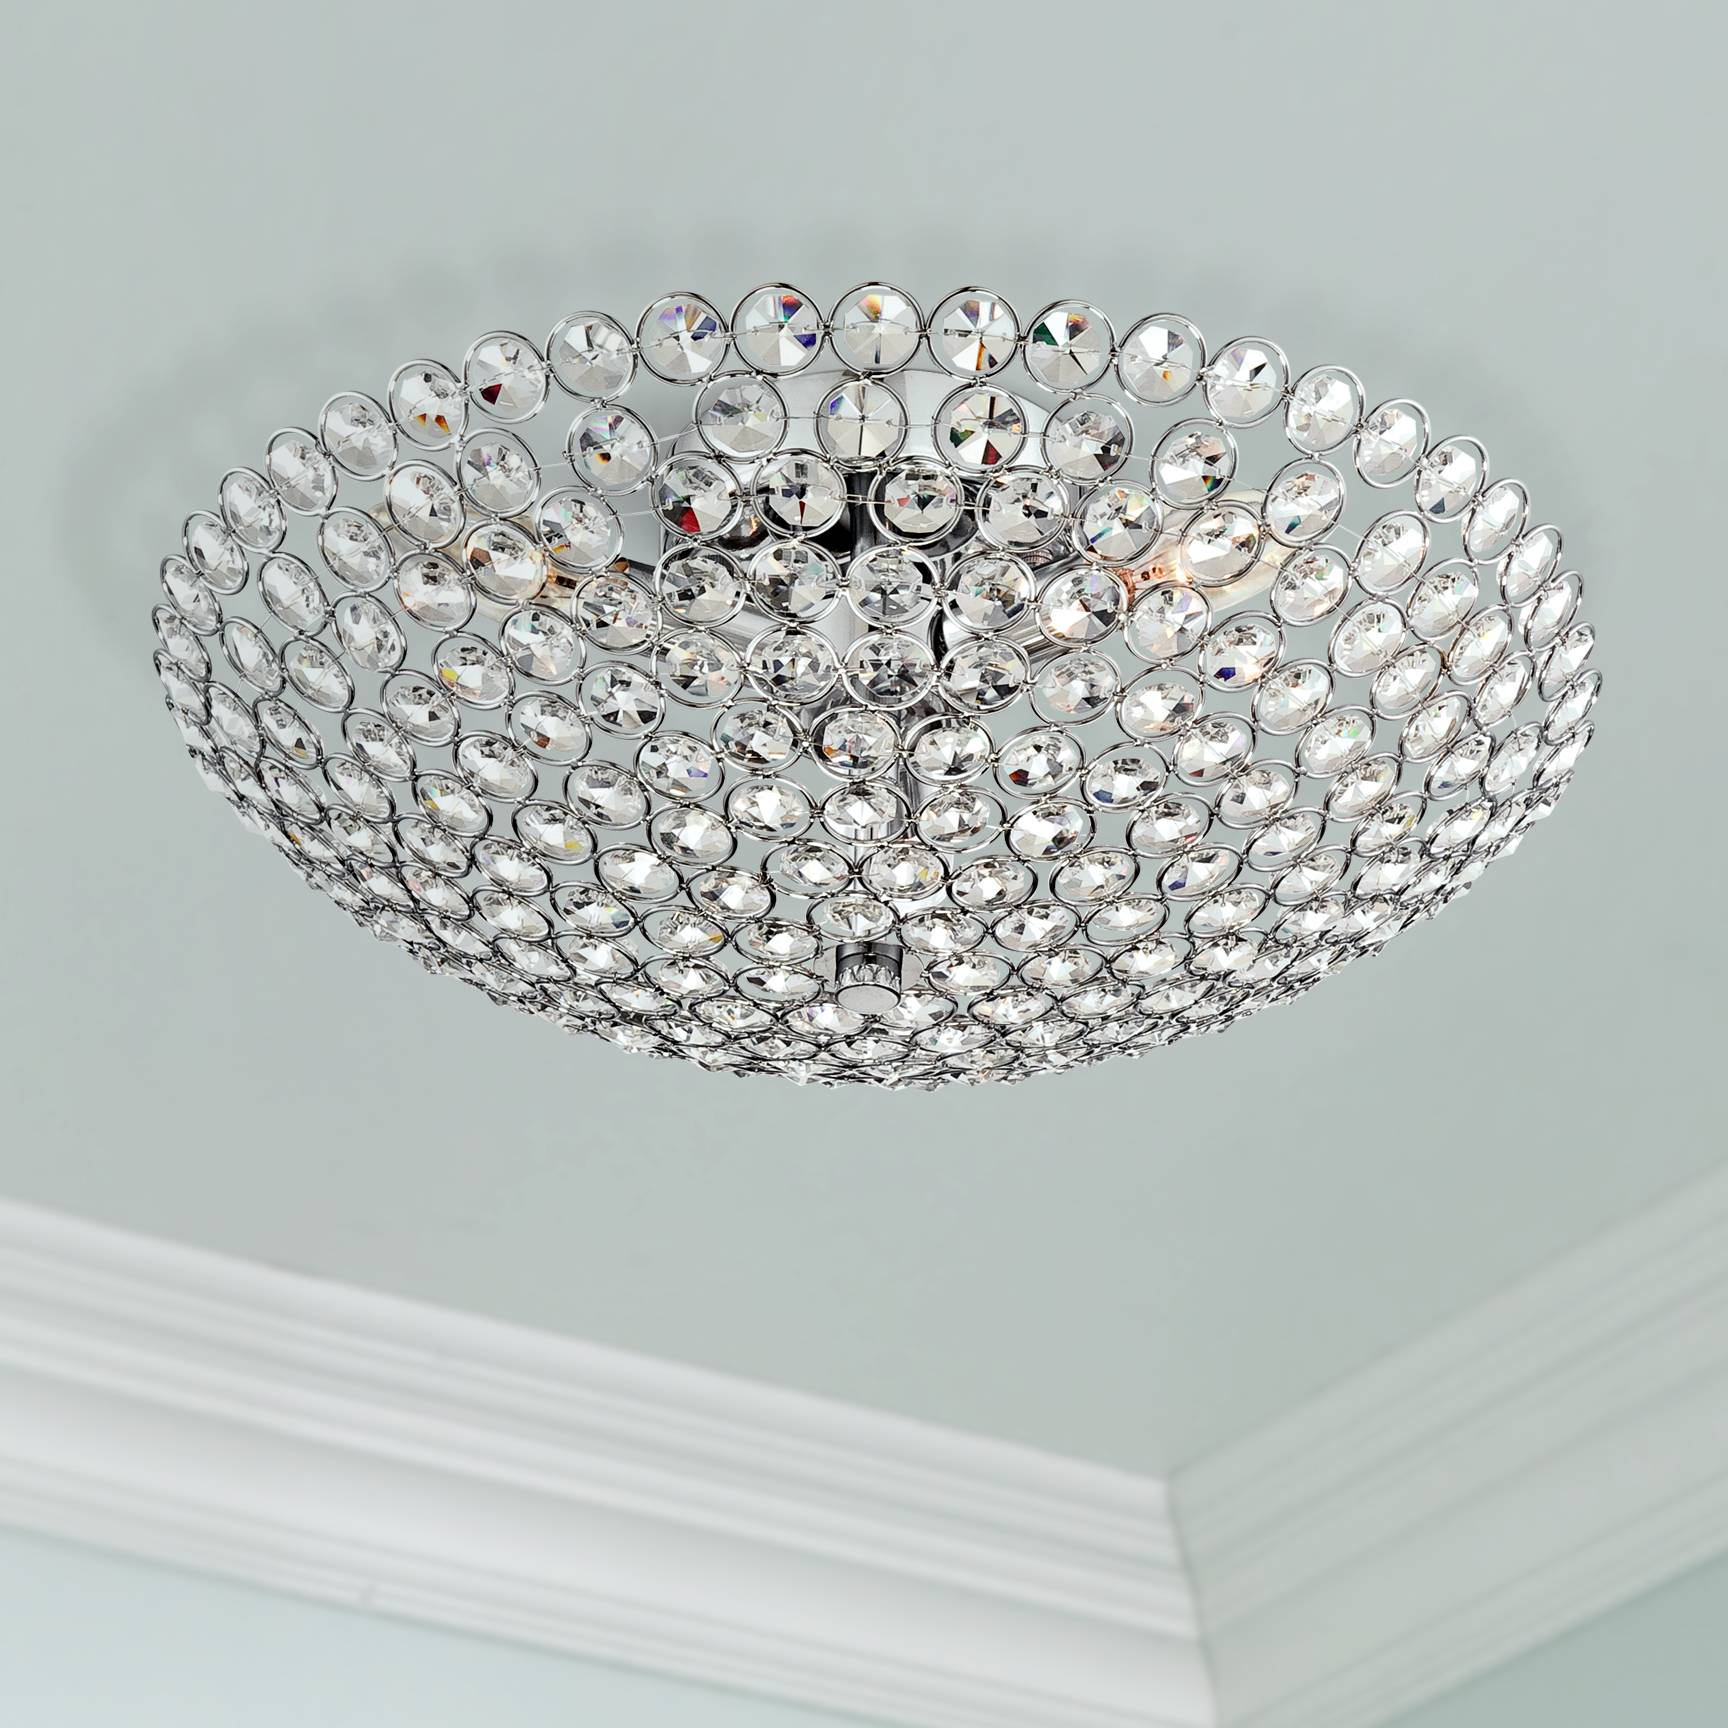 Details about ceiling light semi flush mount fixture silver crystals 16 wide bedroom kitchen